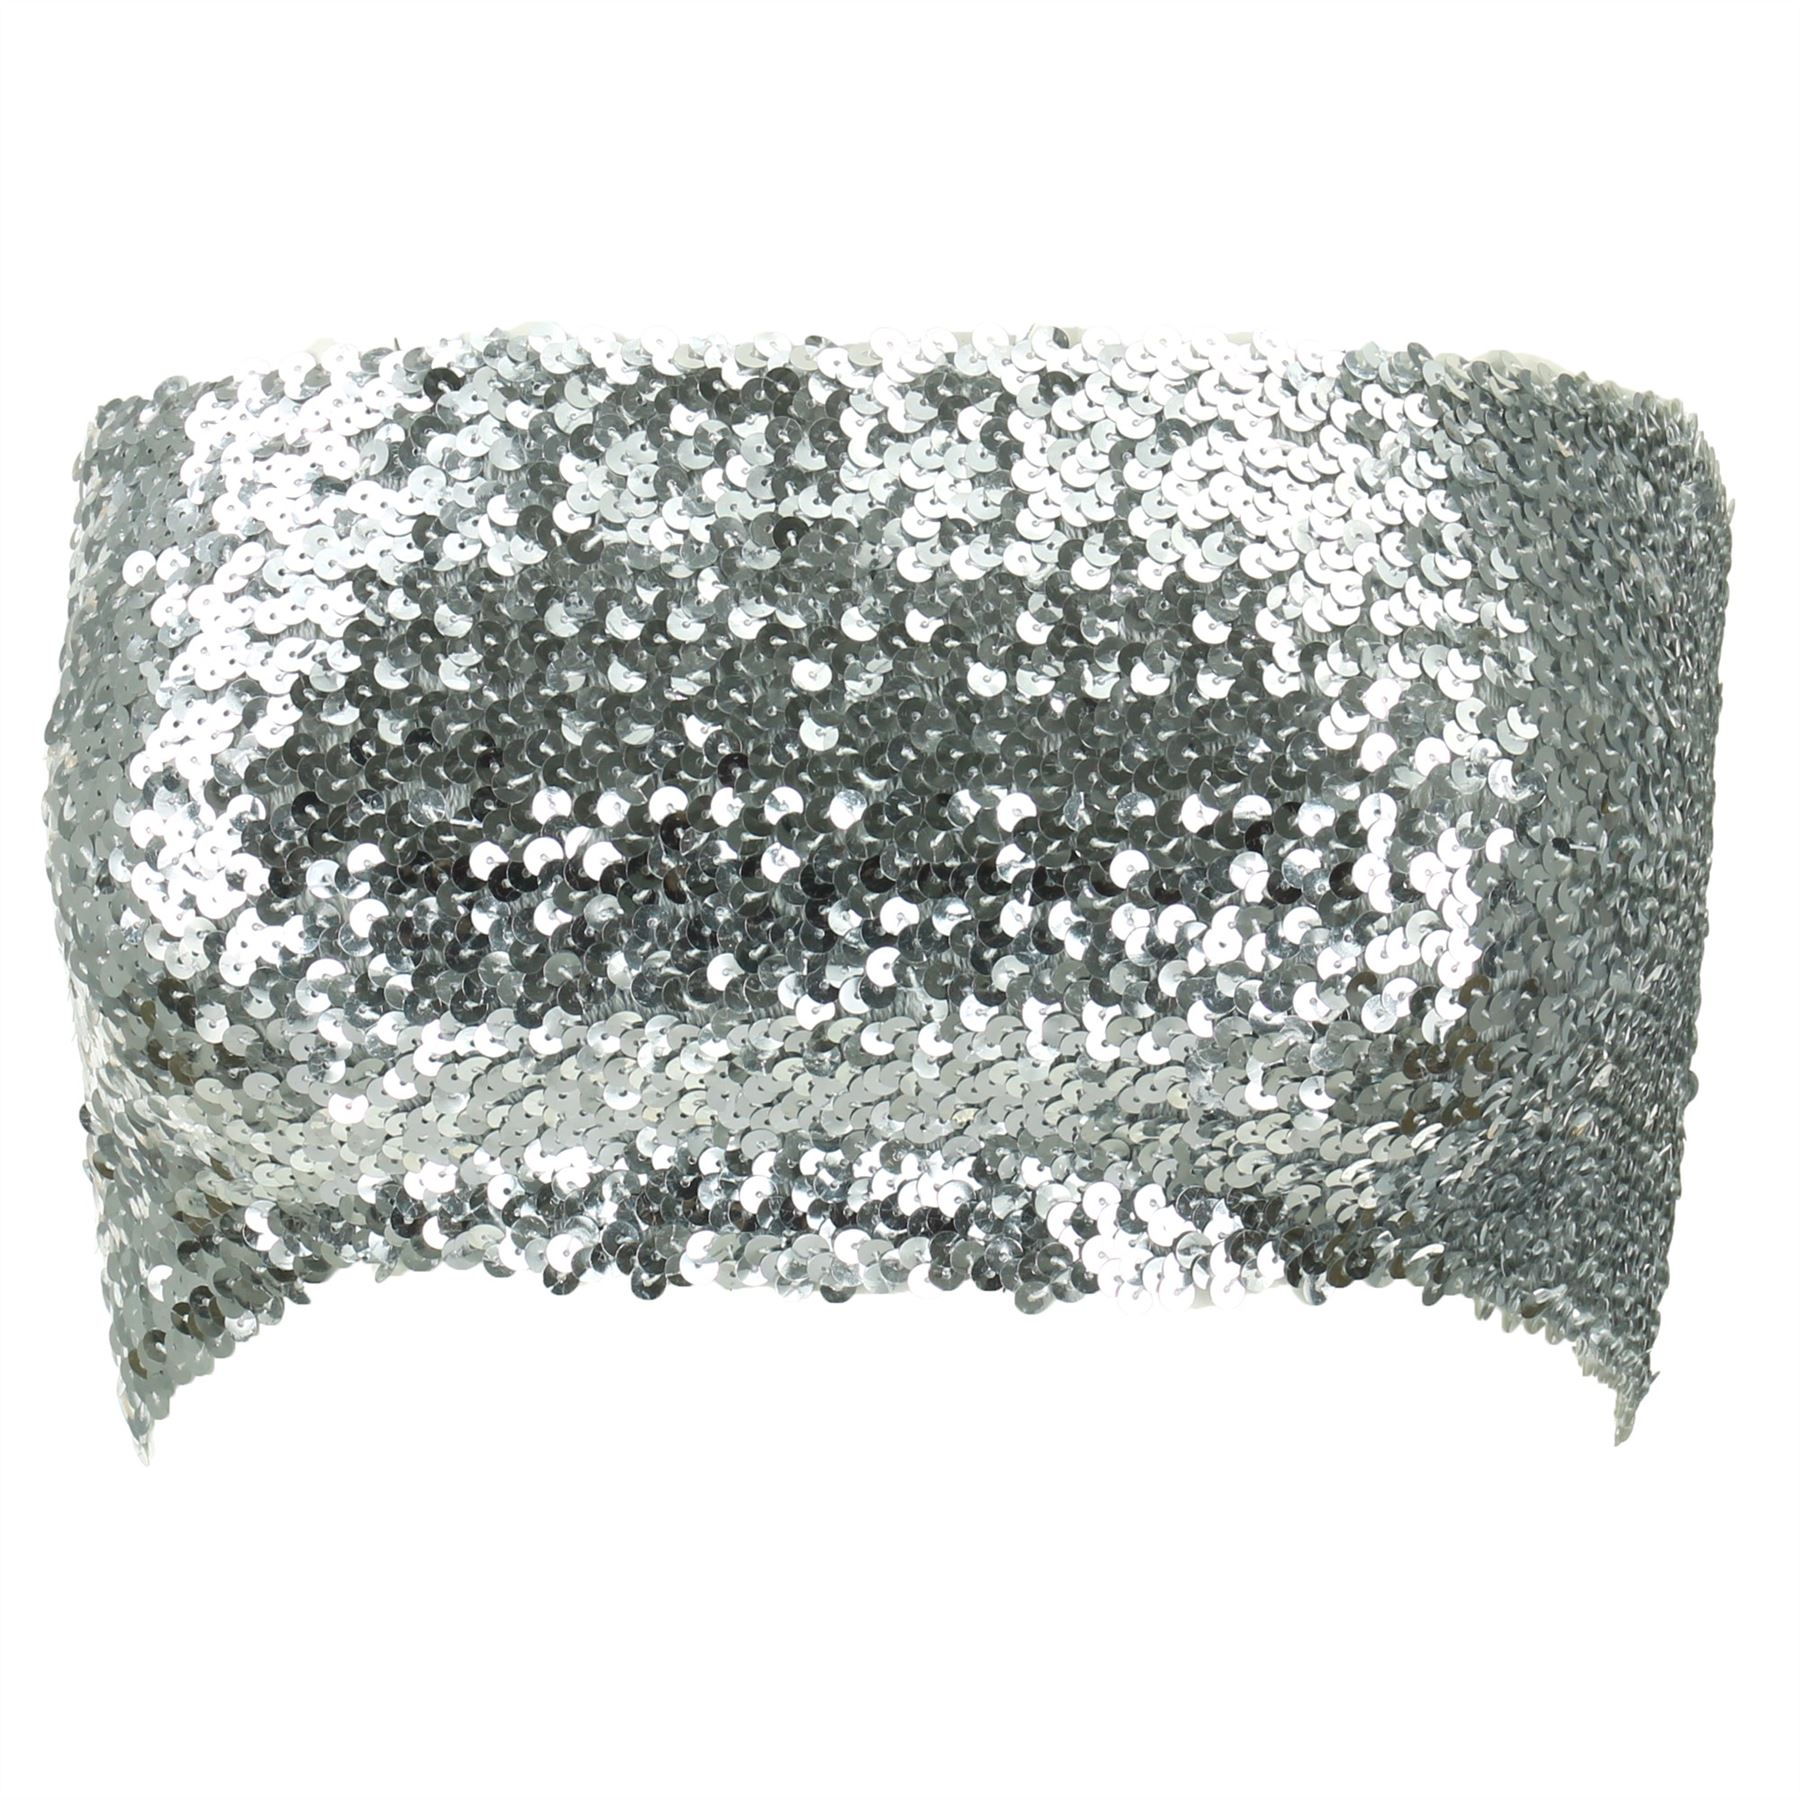 Sequin Strapless Top Firefly Shiny Sparkling Sparkly Sparkly Party